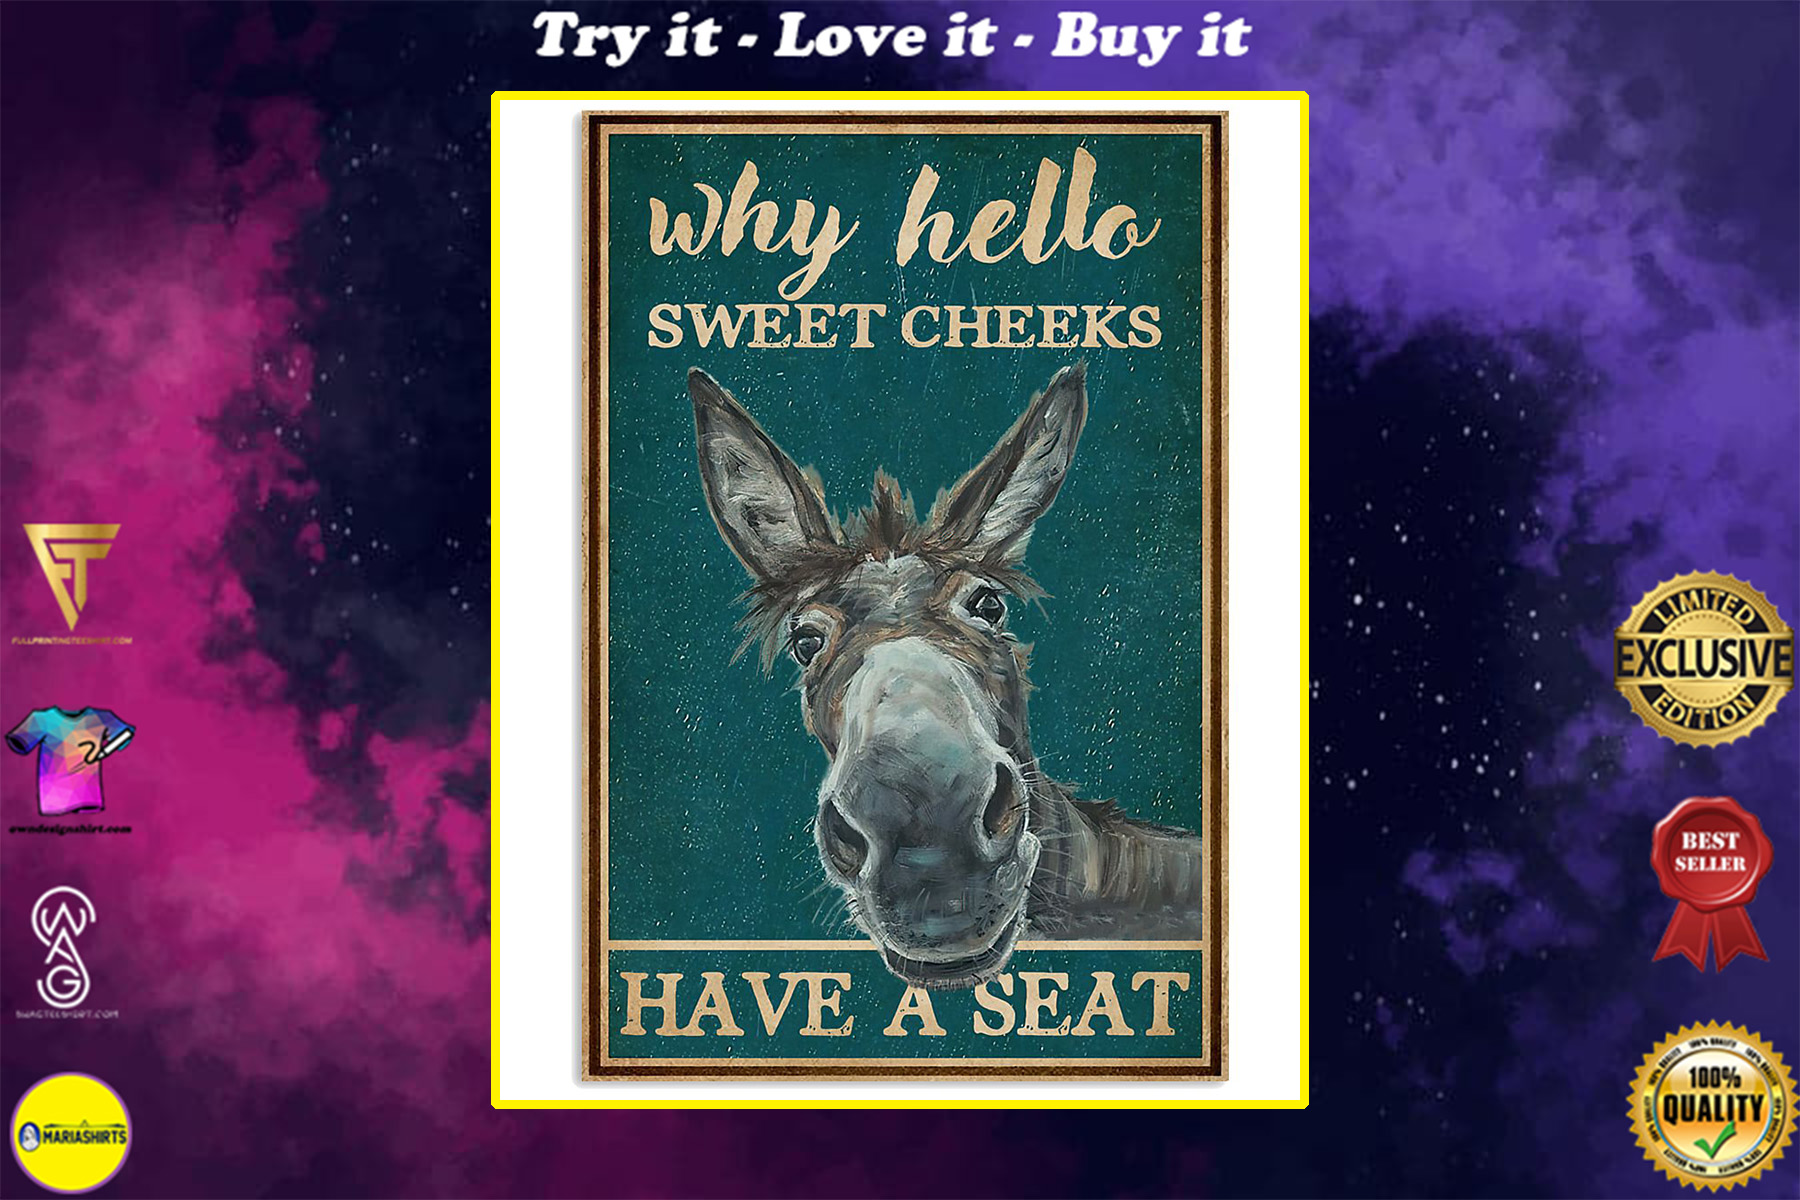 donkey why hello sweet cheeks have a seat vintage poster